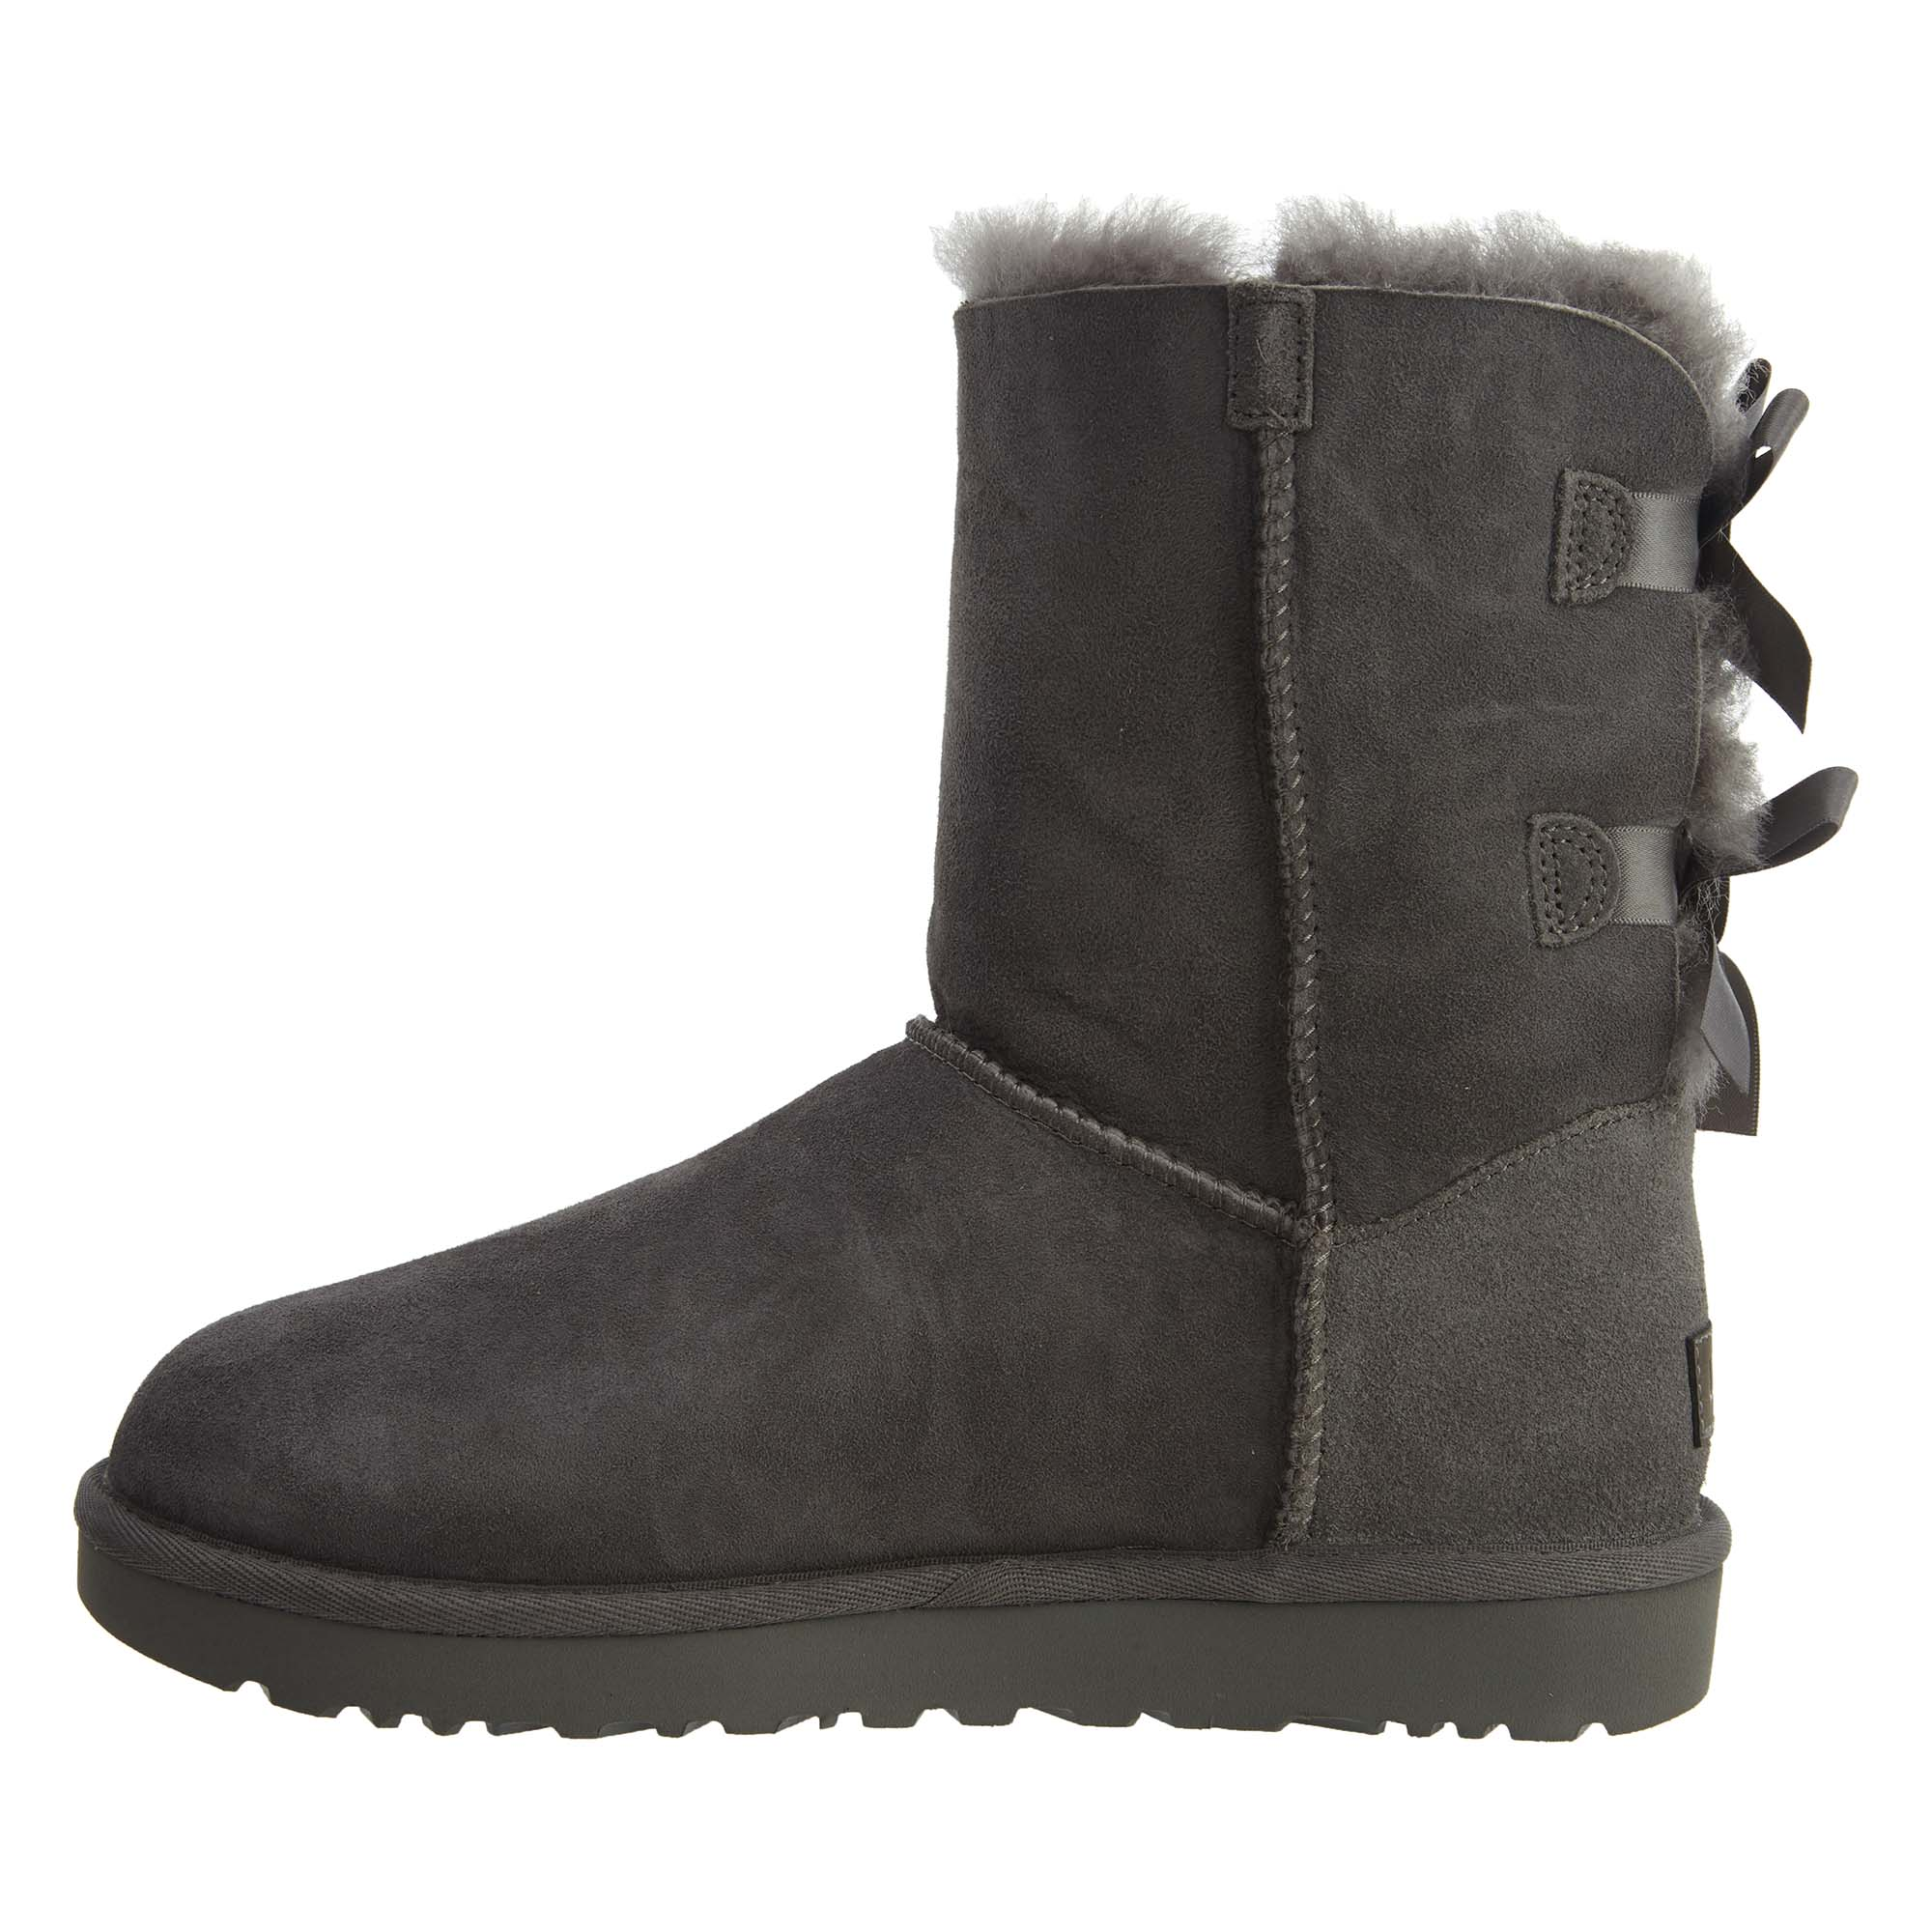 a6db54bee8 Details about UGG Womens Bailey Bow II Boots Grey 1016225